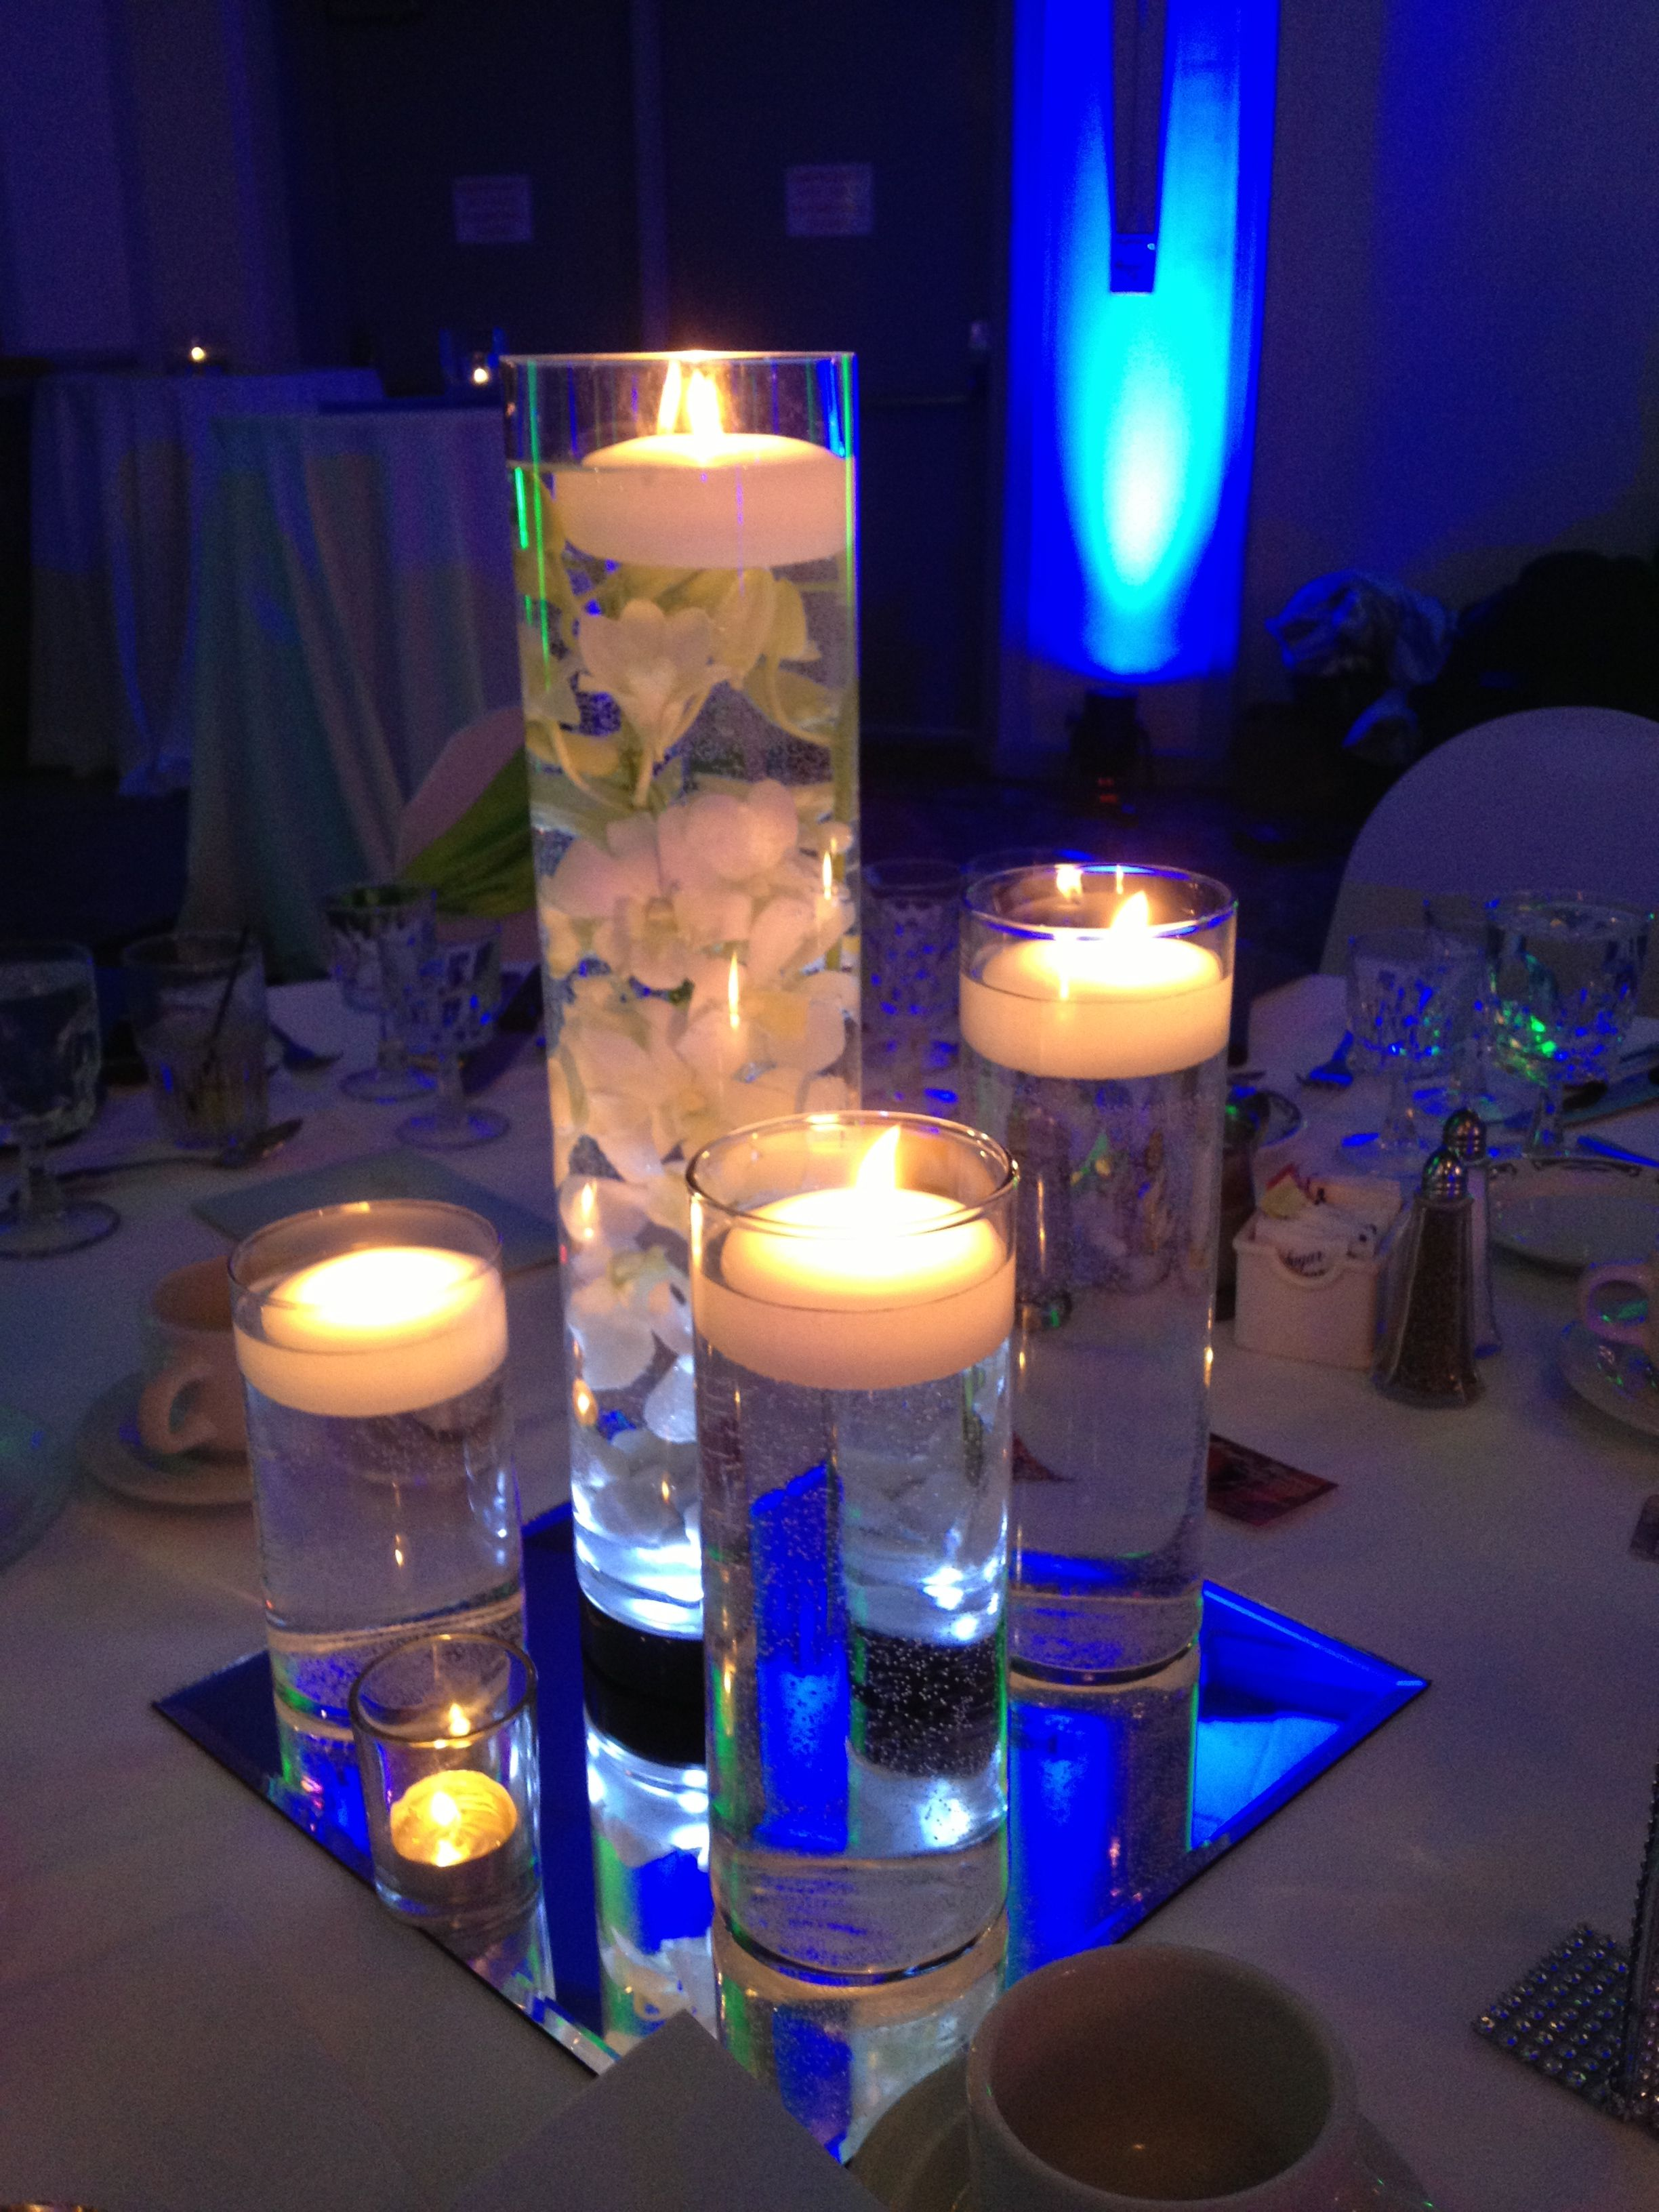 Floating Candle Centerpiece But With Only 3 And No Flowers And Pink